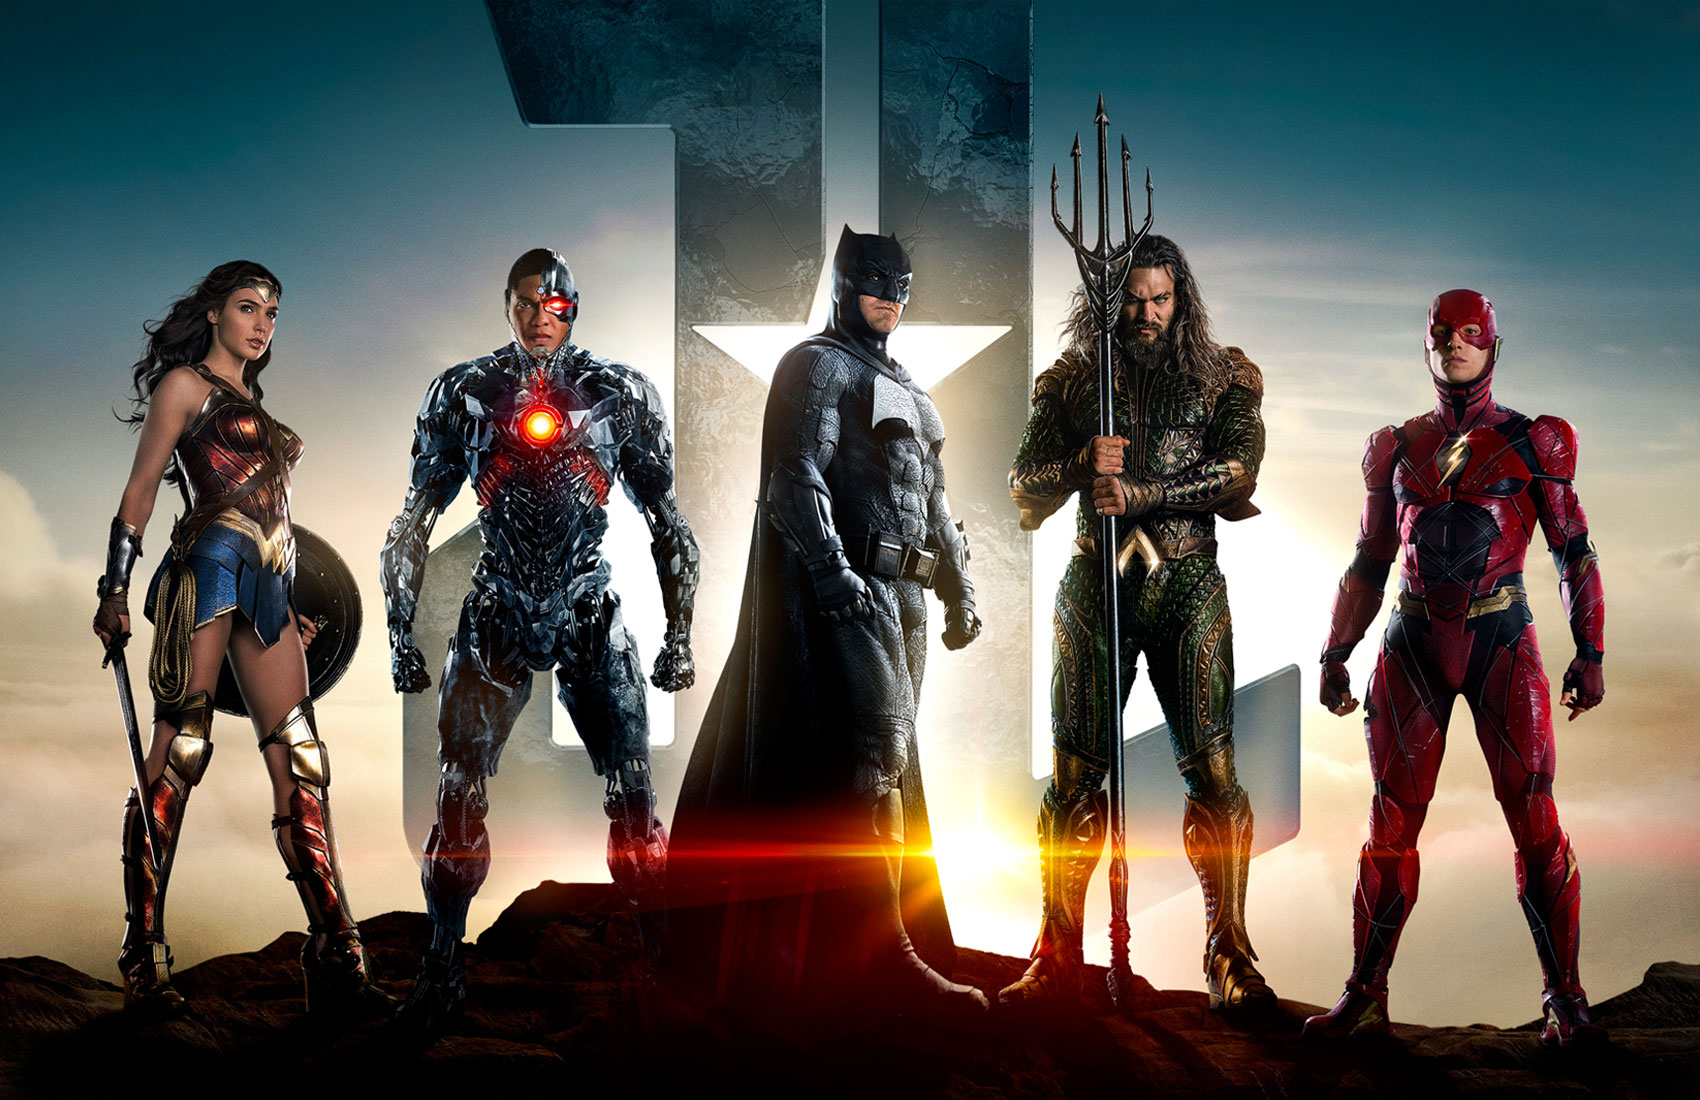 https://weliveentertainment.com/wp-content/uploads/2017/11/Justice-League-Review.jpg